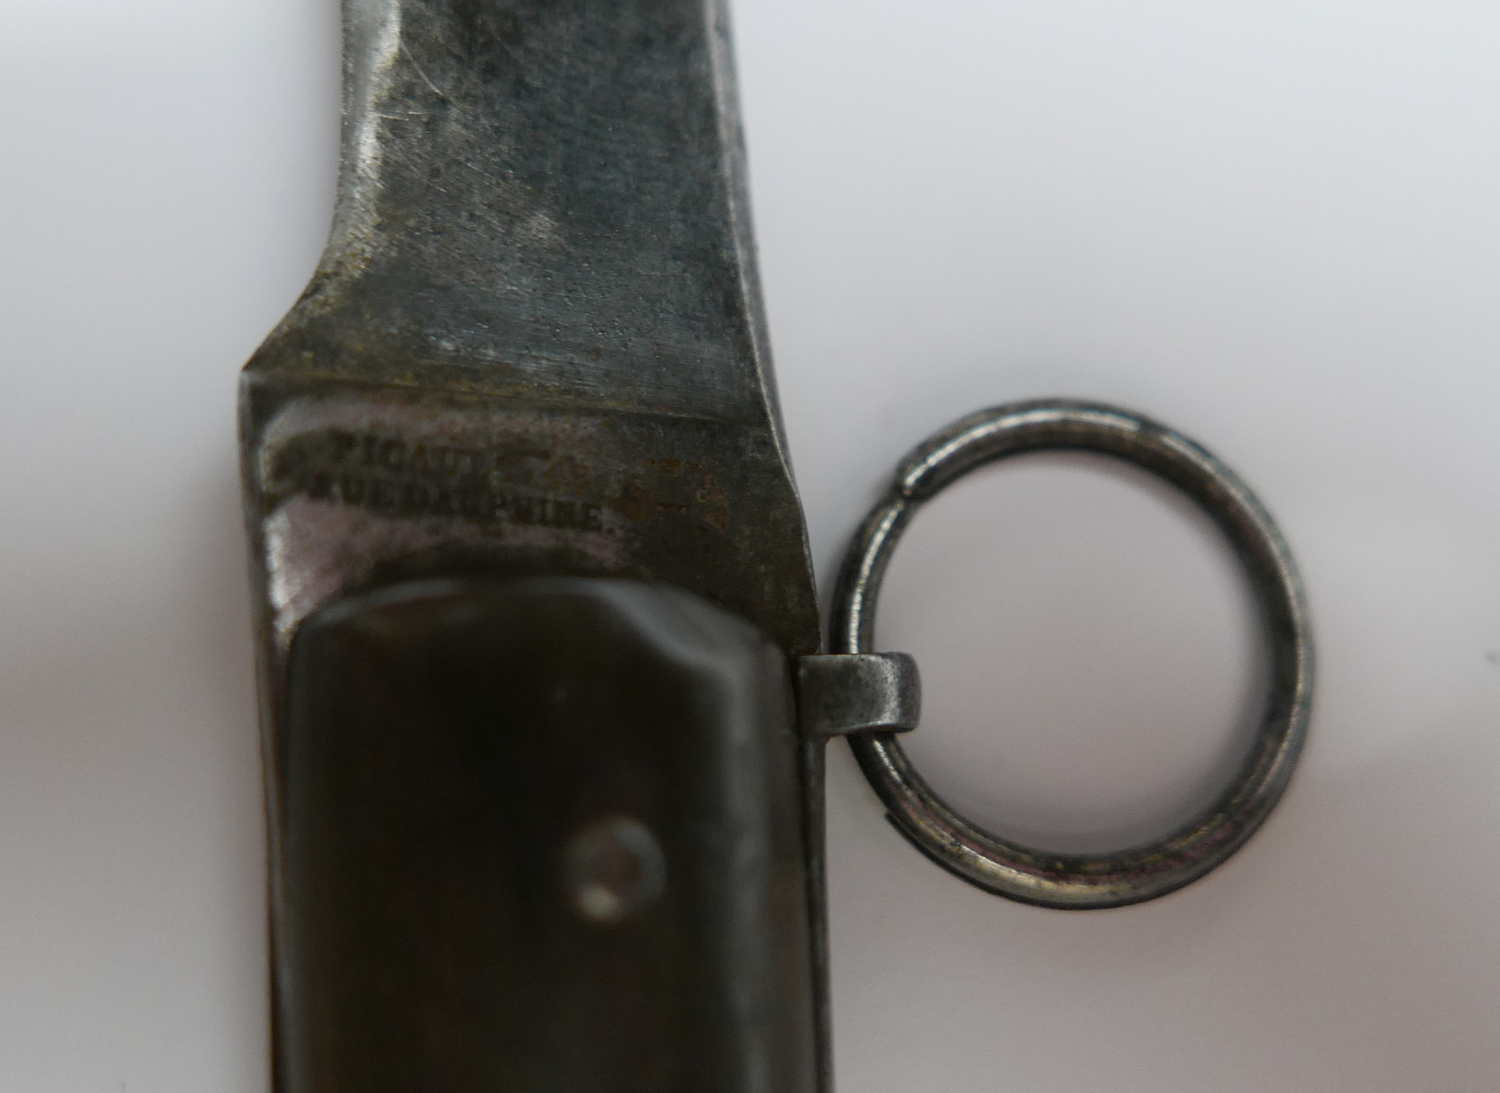 Lot 1 - Antique French Picault Locking Knife - 260mm open - 150mm closed.